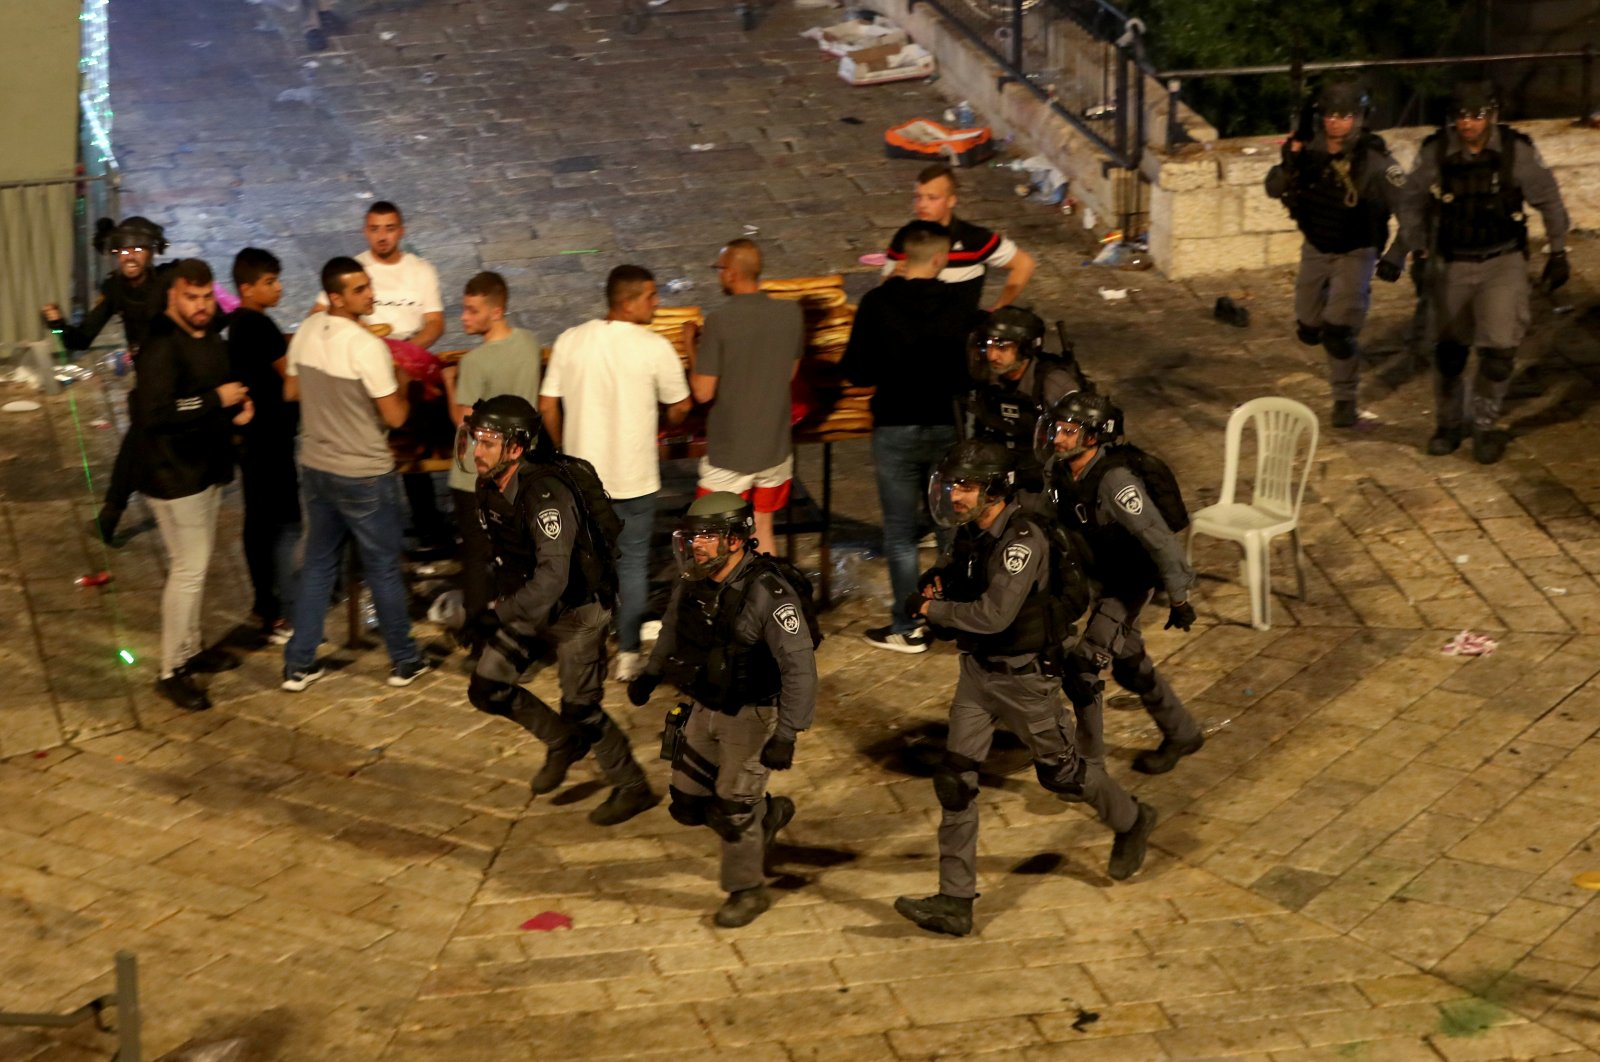 Israeli police are seen during attacks targeting Palestinians at Damascus Gate on Laylat al-Qadr during the holy month of Ramadan, in Jerusalem's Old City, May 8, 2021. (Reuters Photo)